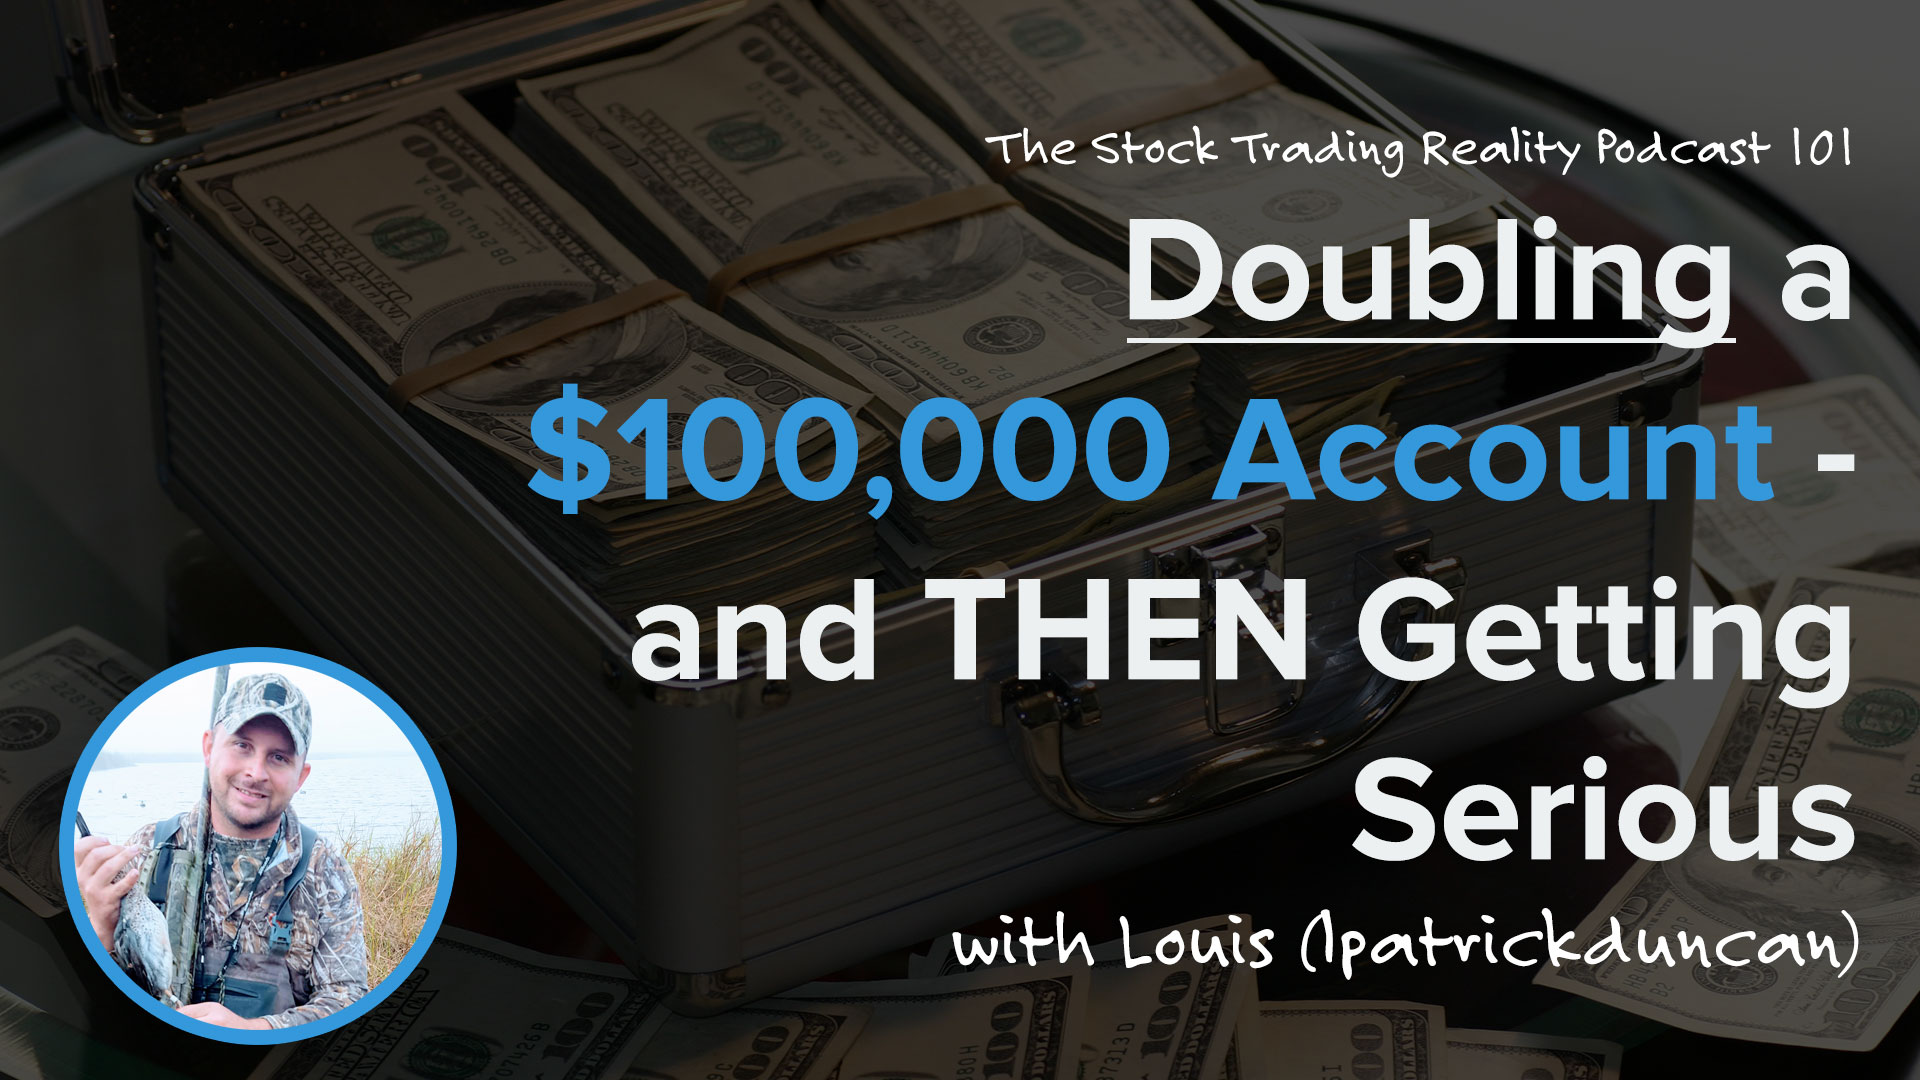 STR 101: Doubling a $100,000 Account - and THEN Getting Serious